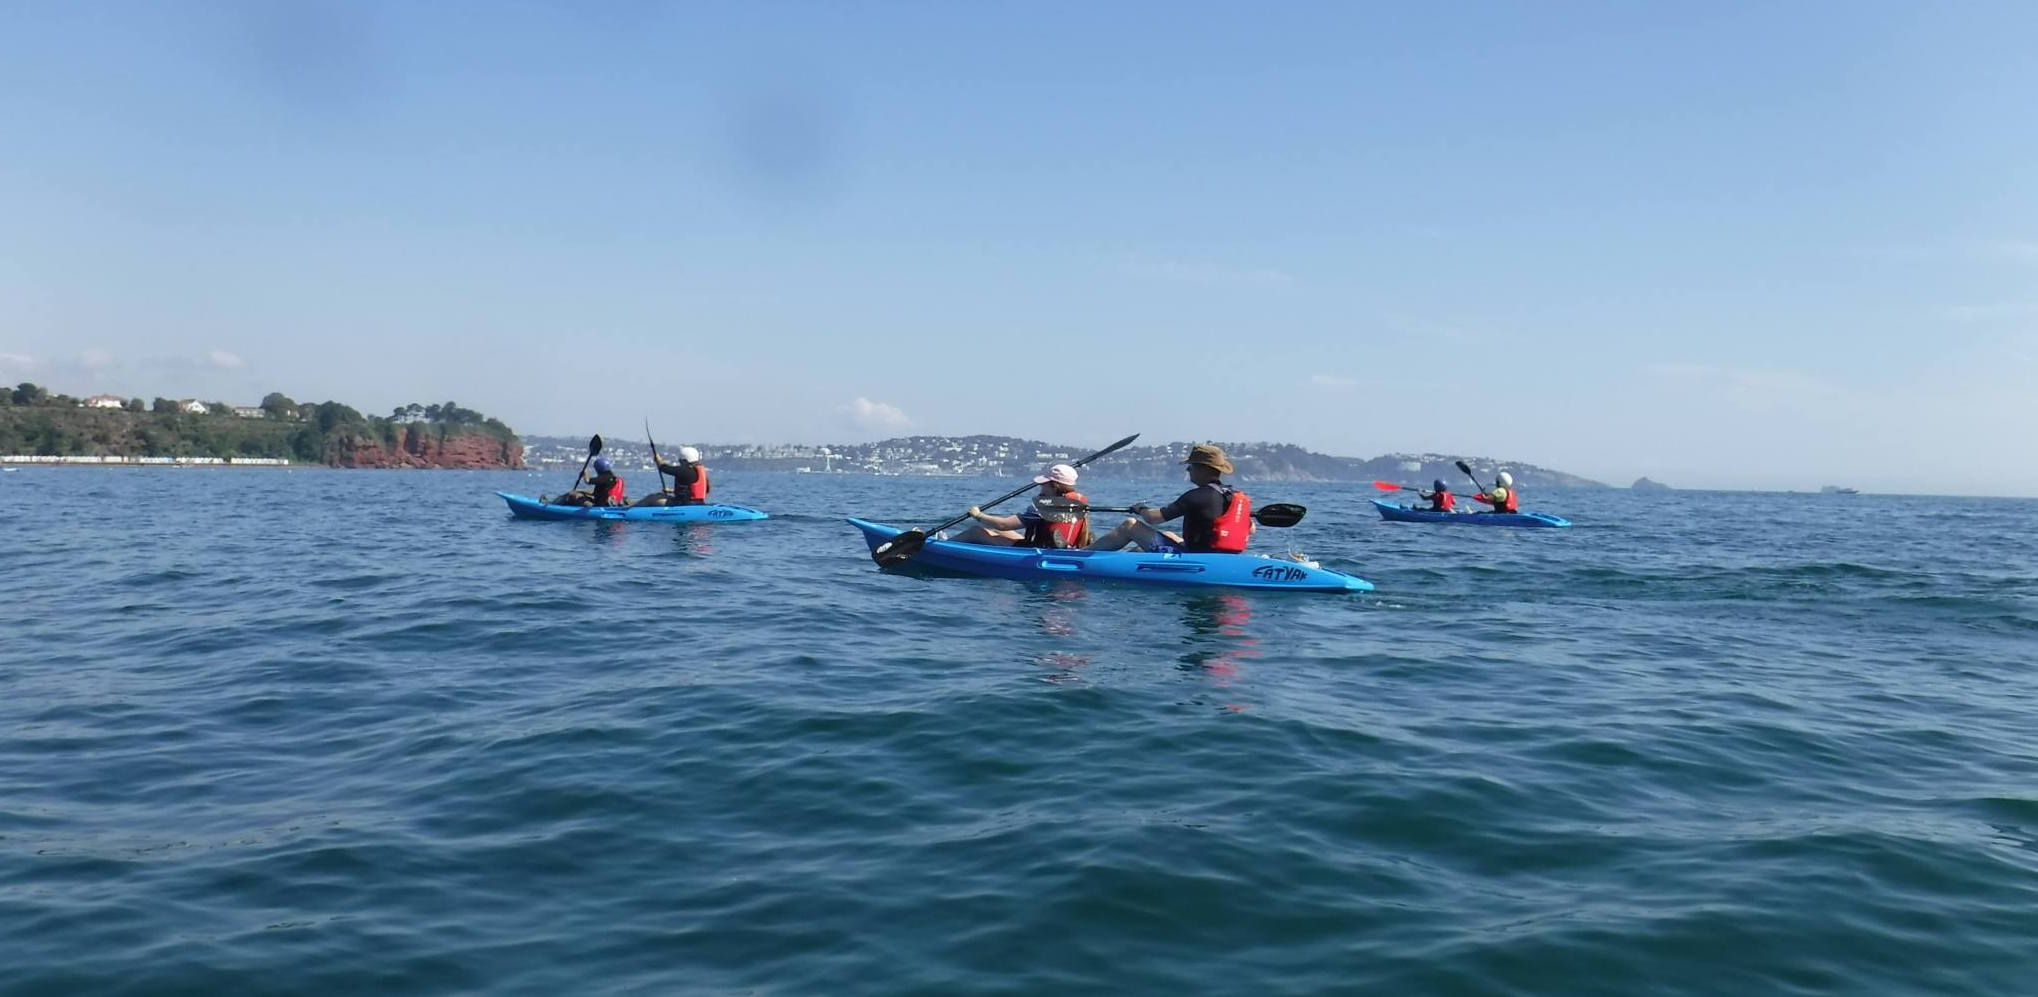 e668888a036b Have you got a long distance kayaking trip you want to share with us  Get  in touch and we can add it to the page.